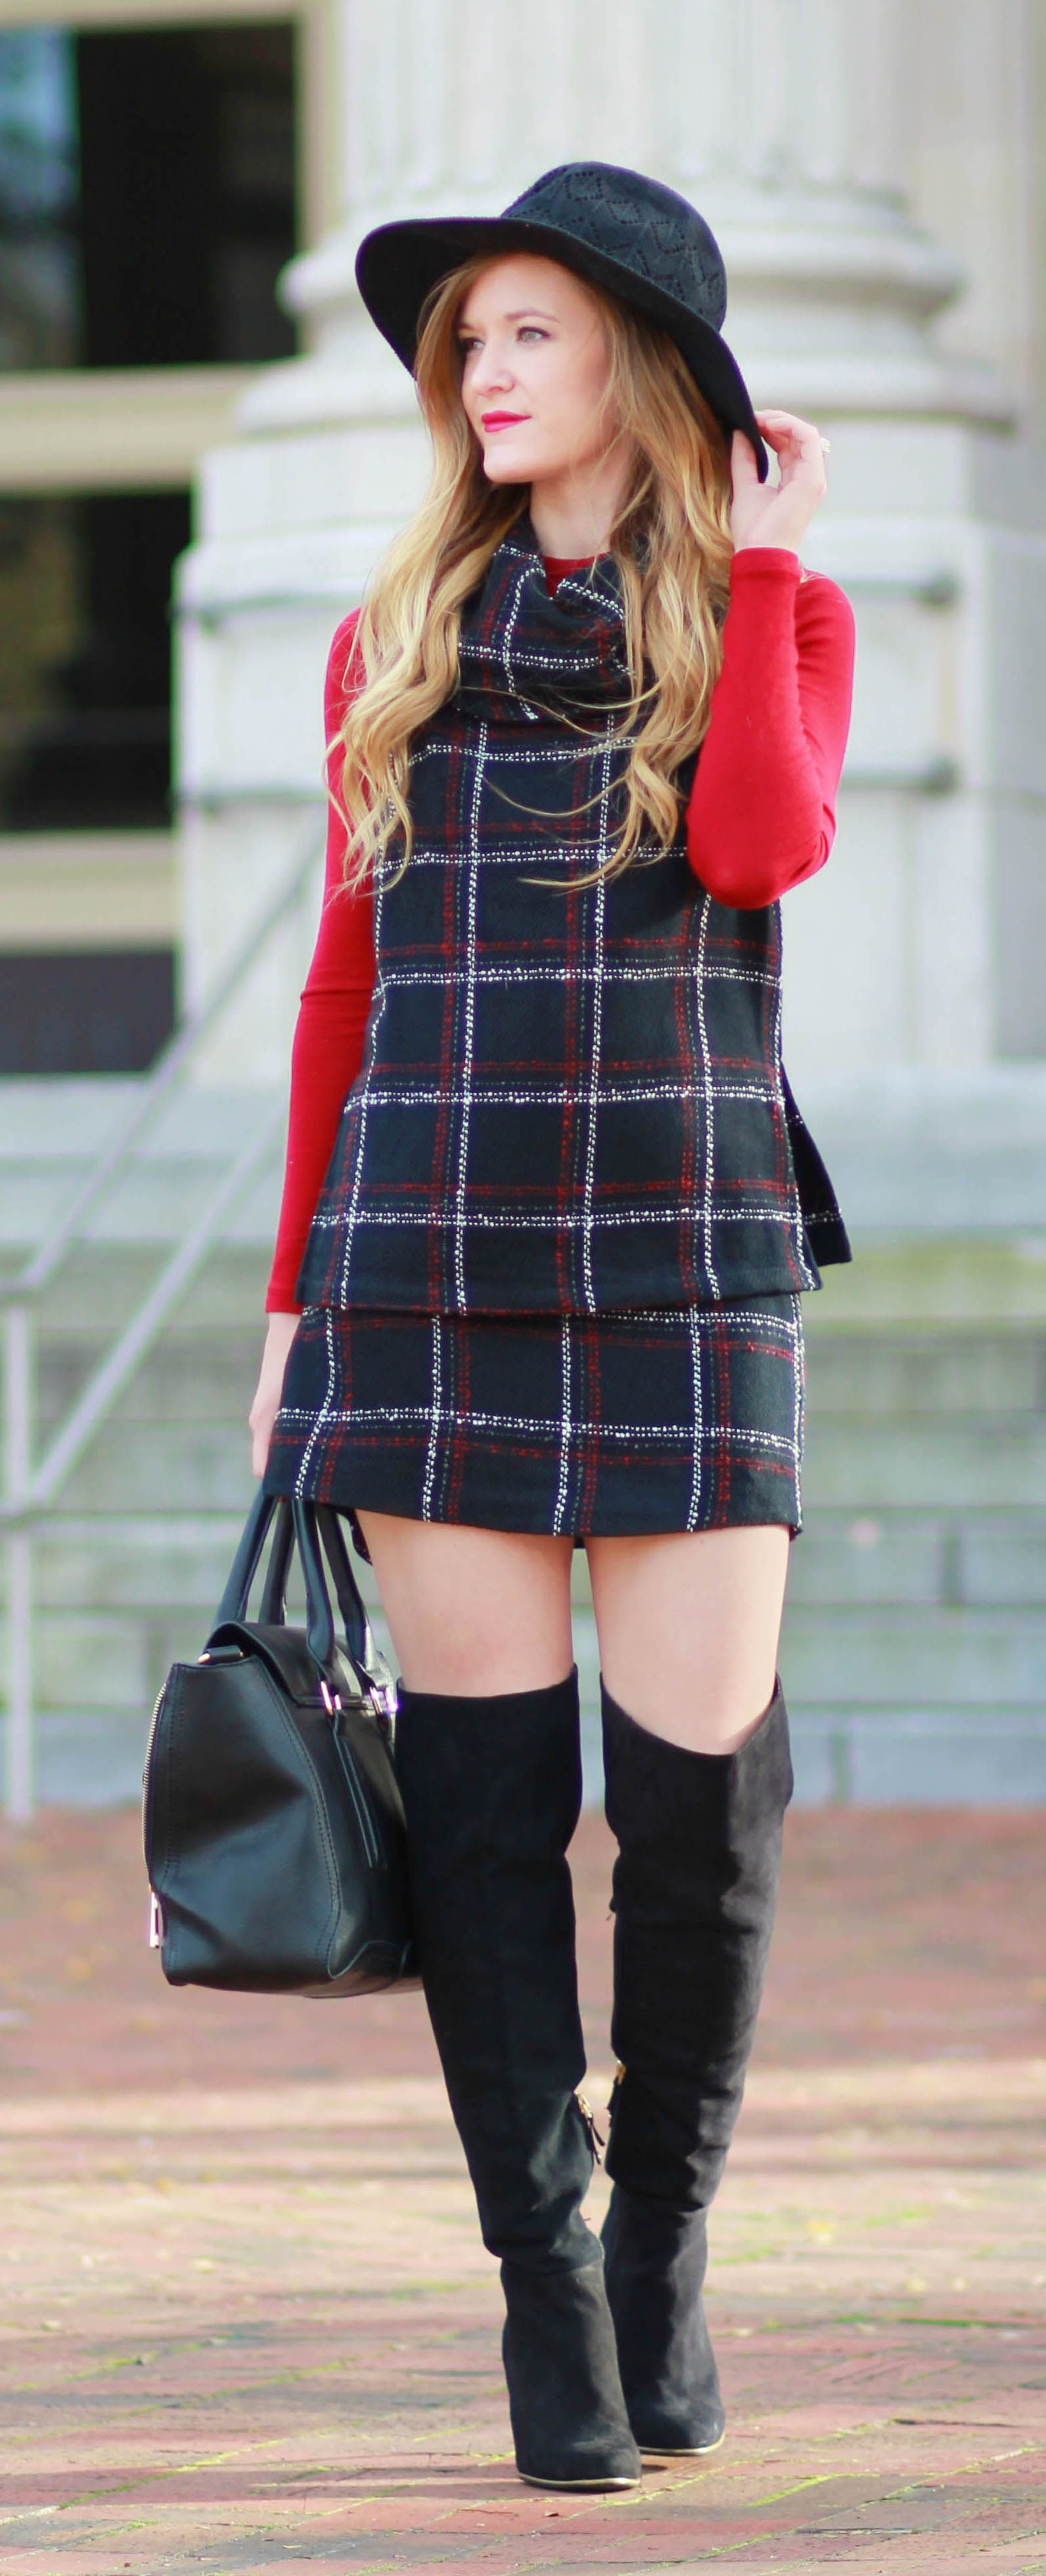 Tweed set and over the knee boots